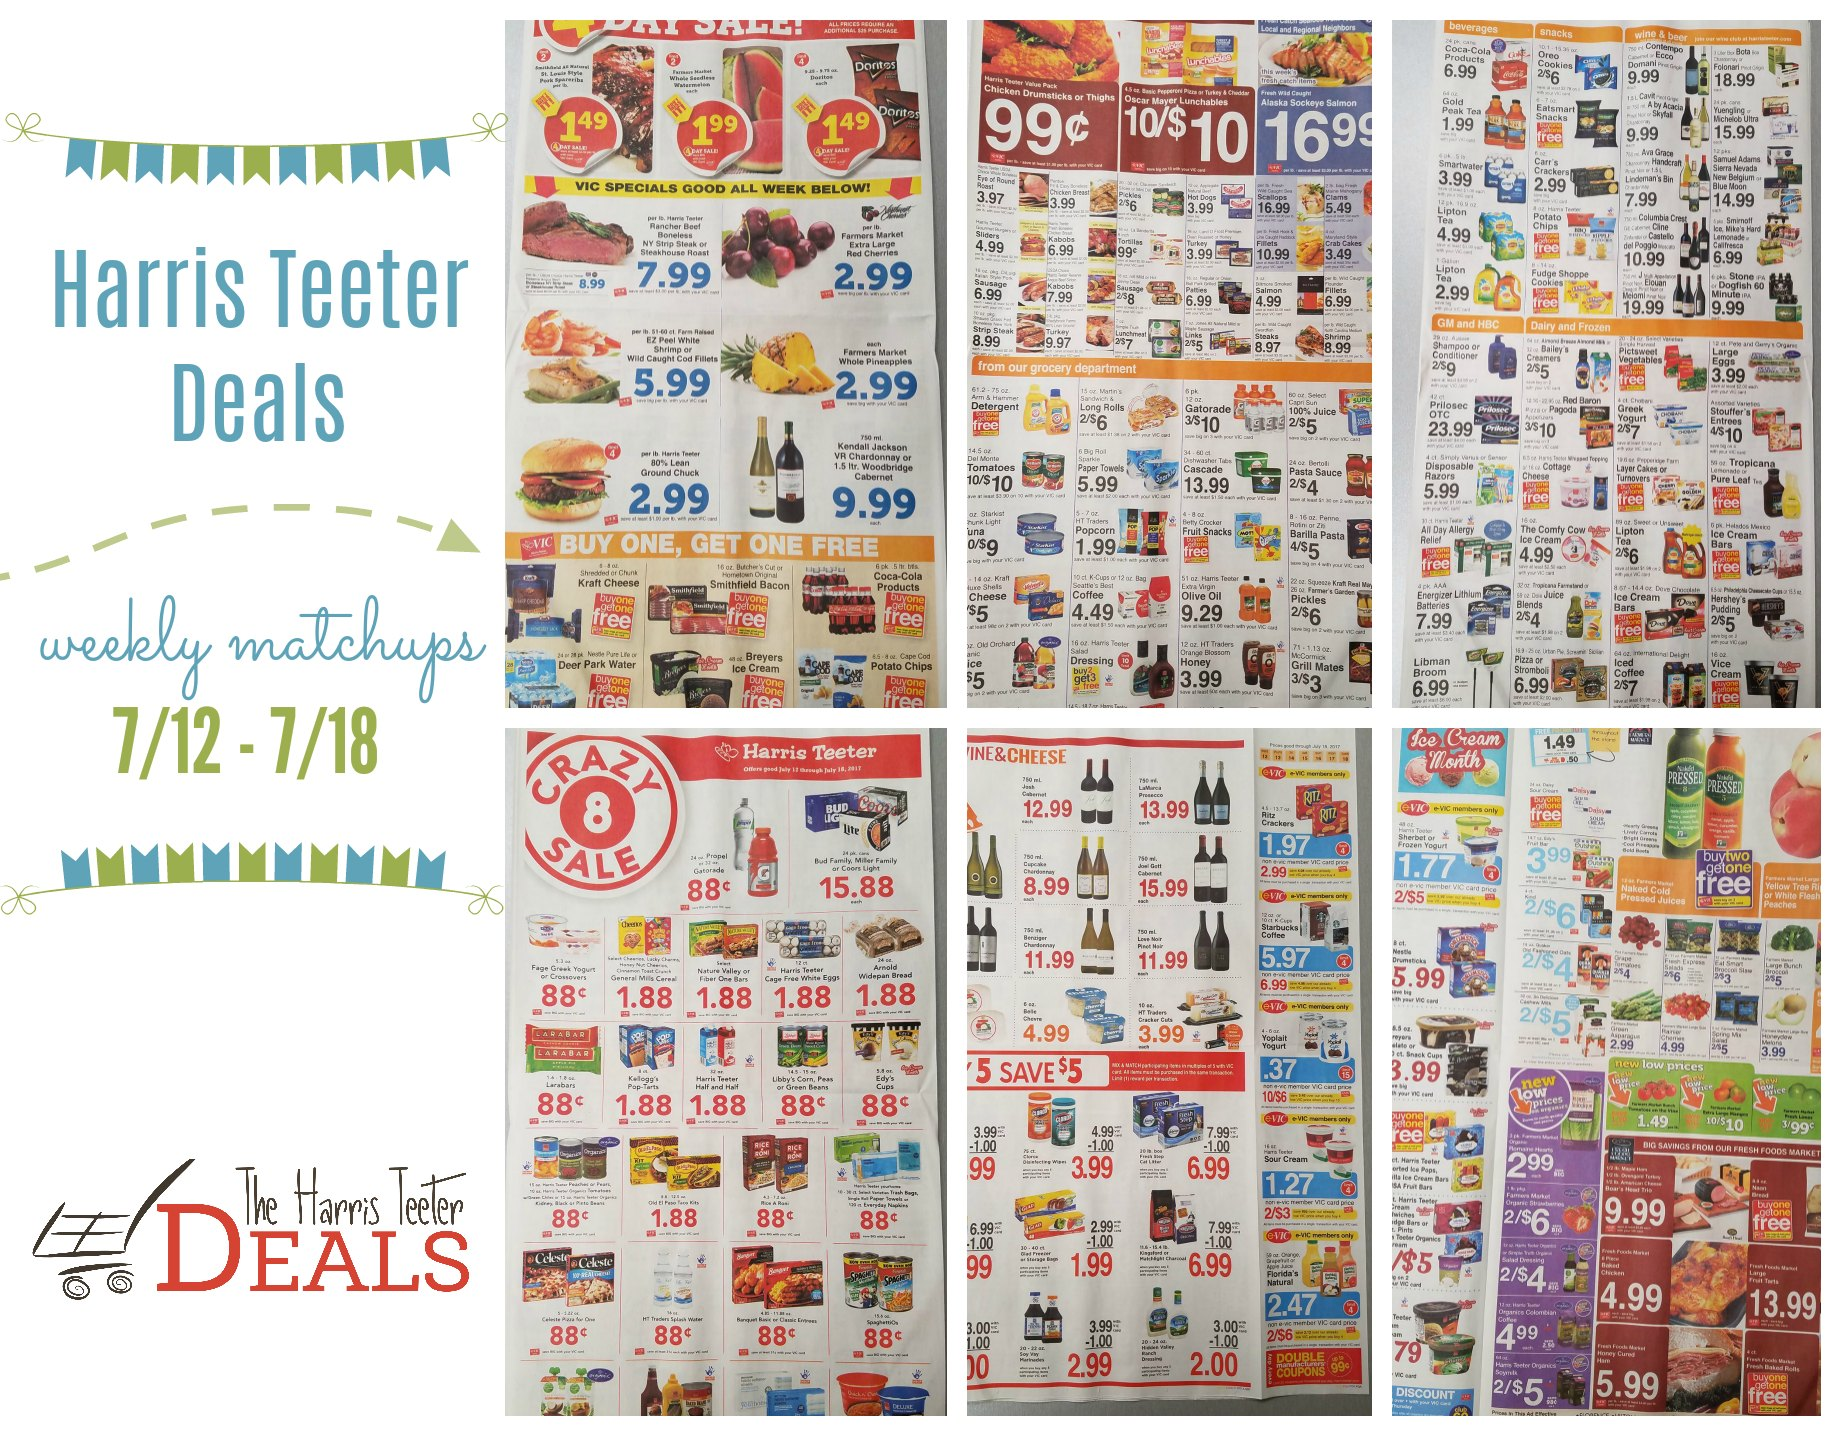 Harris Teeter Deals Weekly List and Coupon Matchups 7/12 - 7/18 - The Harris Teeter Deals